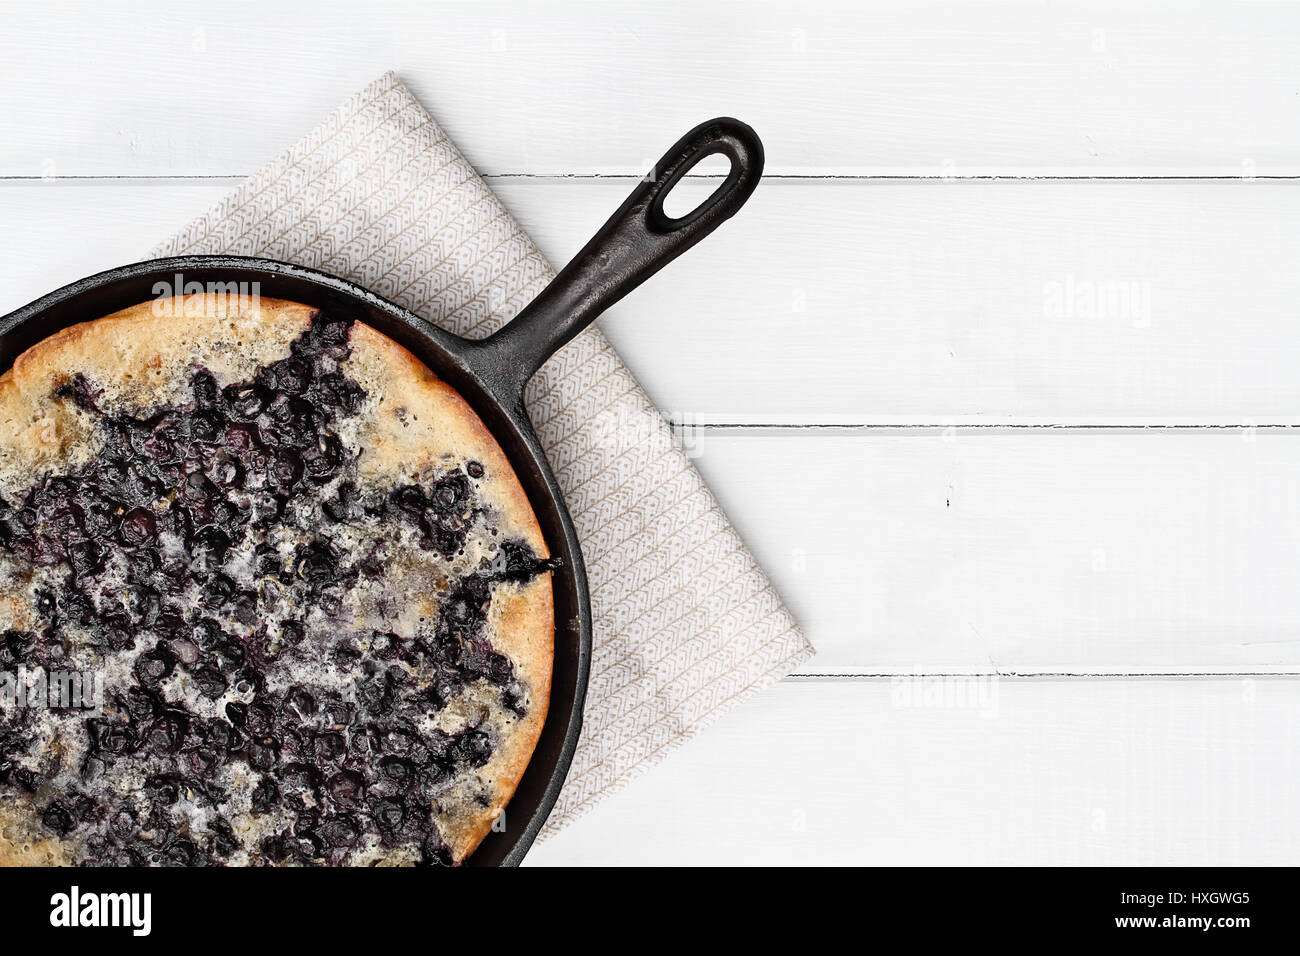 Above image of a blueberry cobbler baked in a cast iron skillet over a white wood table top. Image shot from overhead. - Stock Image